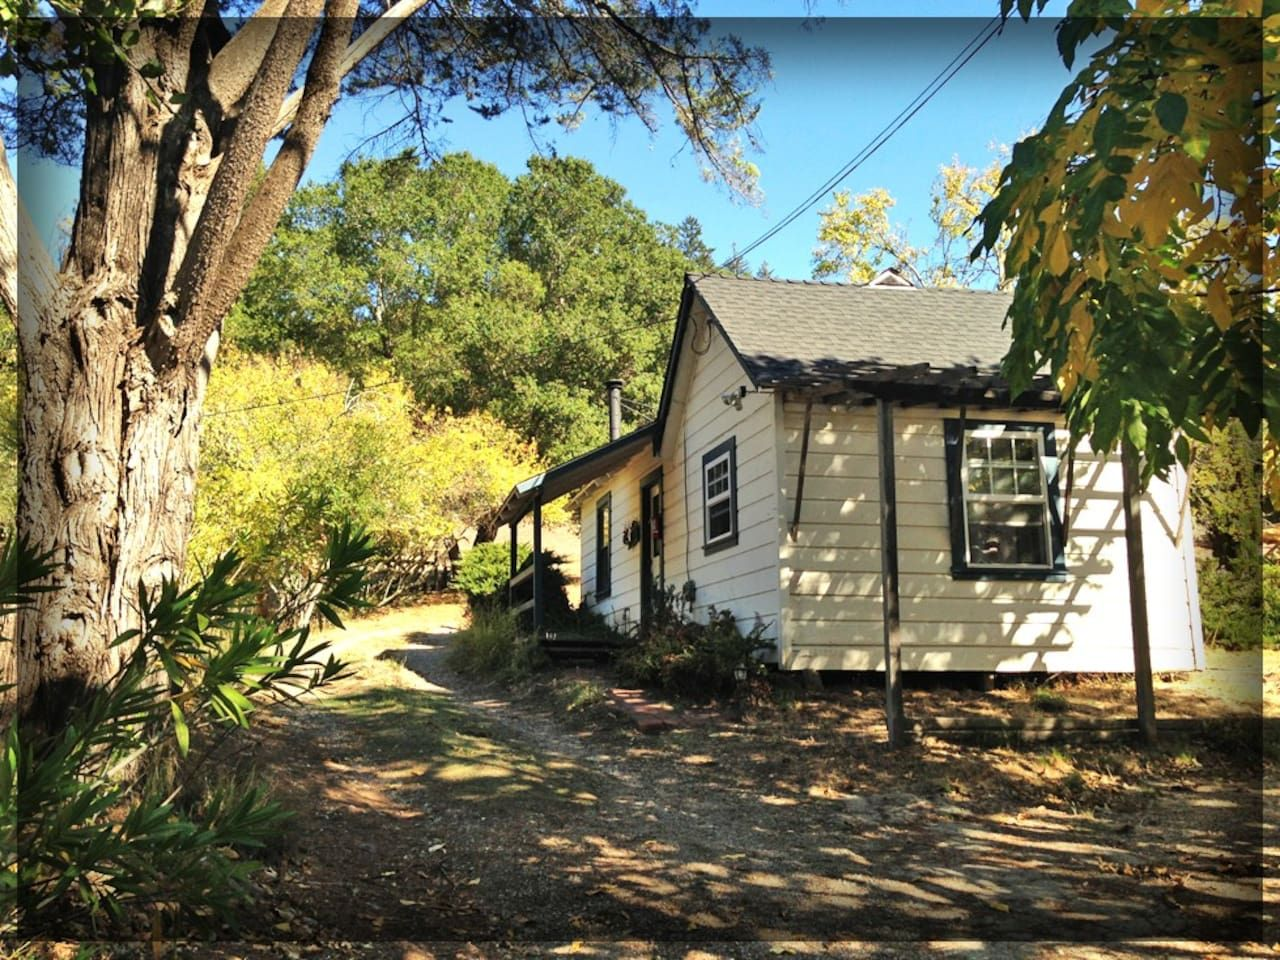 Fairytale cottage in happy valley cottages for rent in